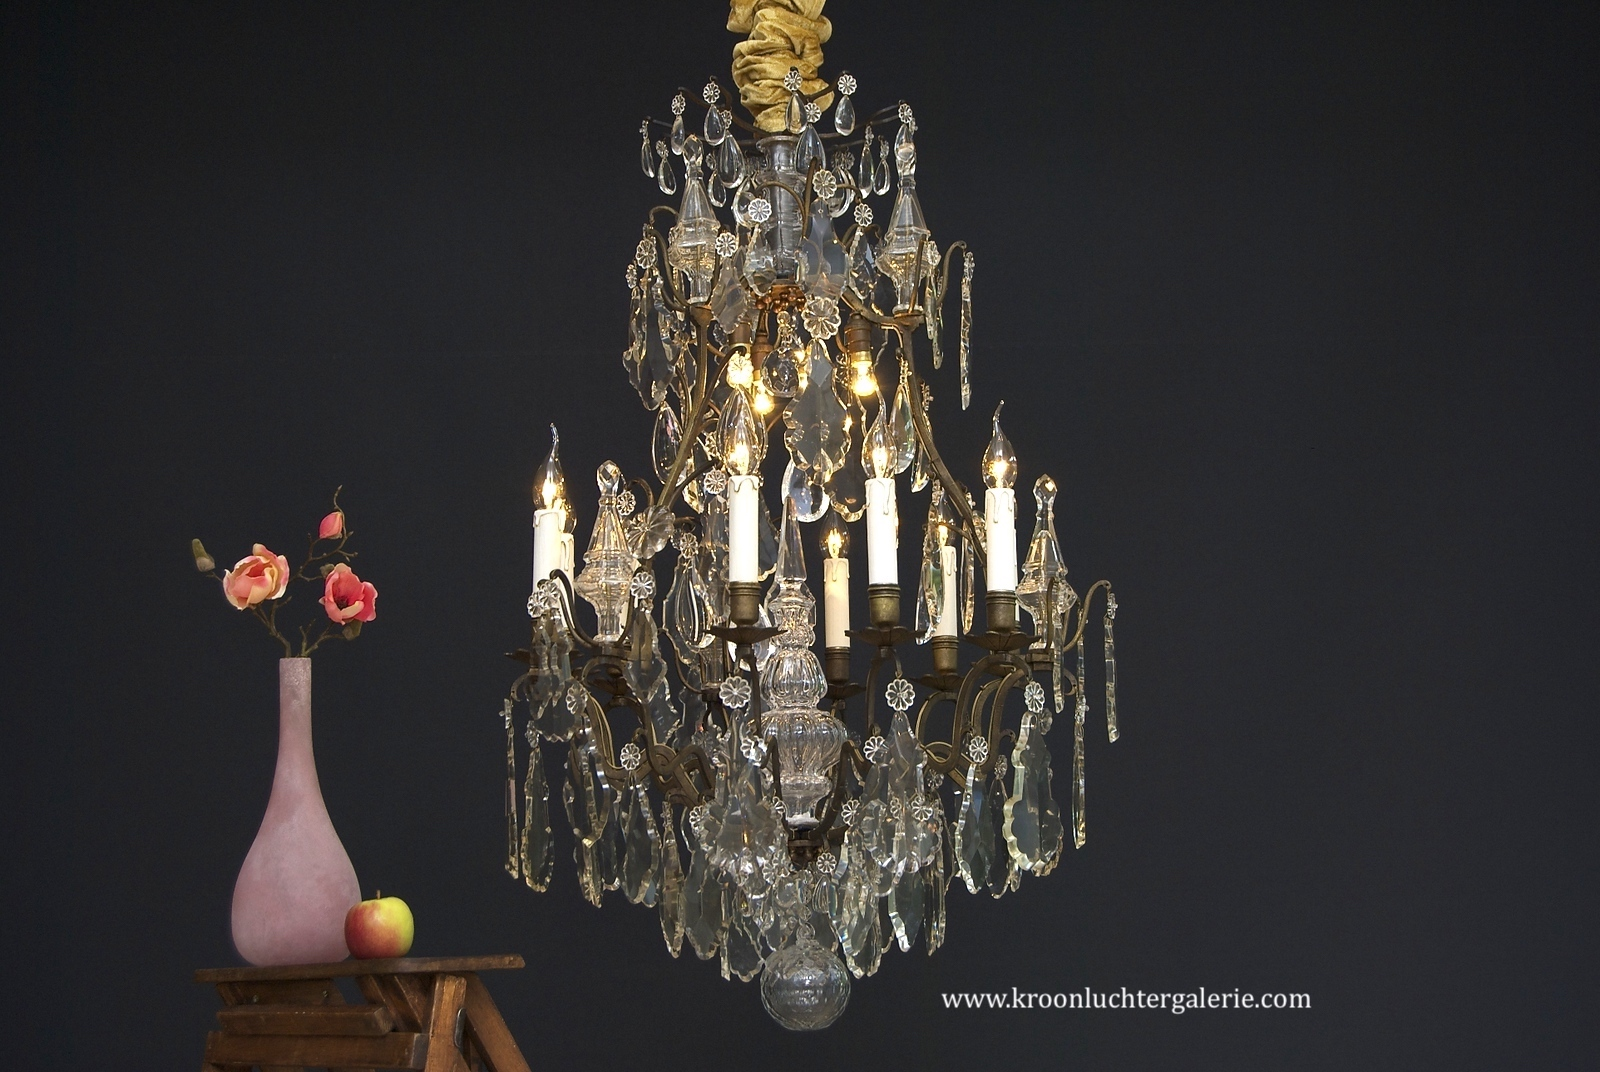 A 19th century French crystal chandelier with 12 light